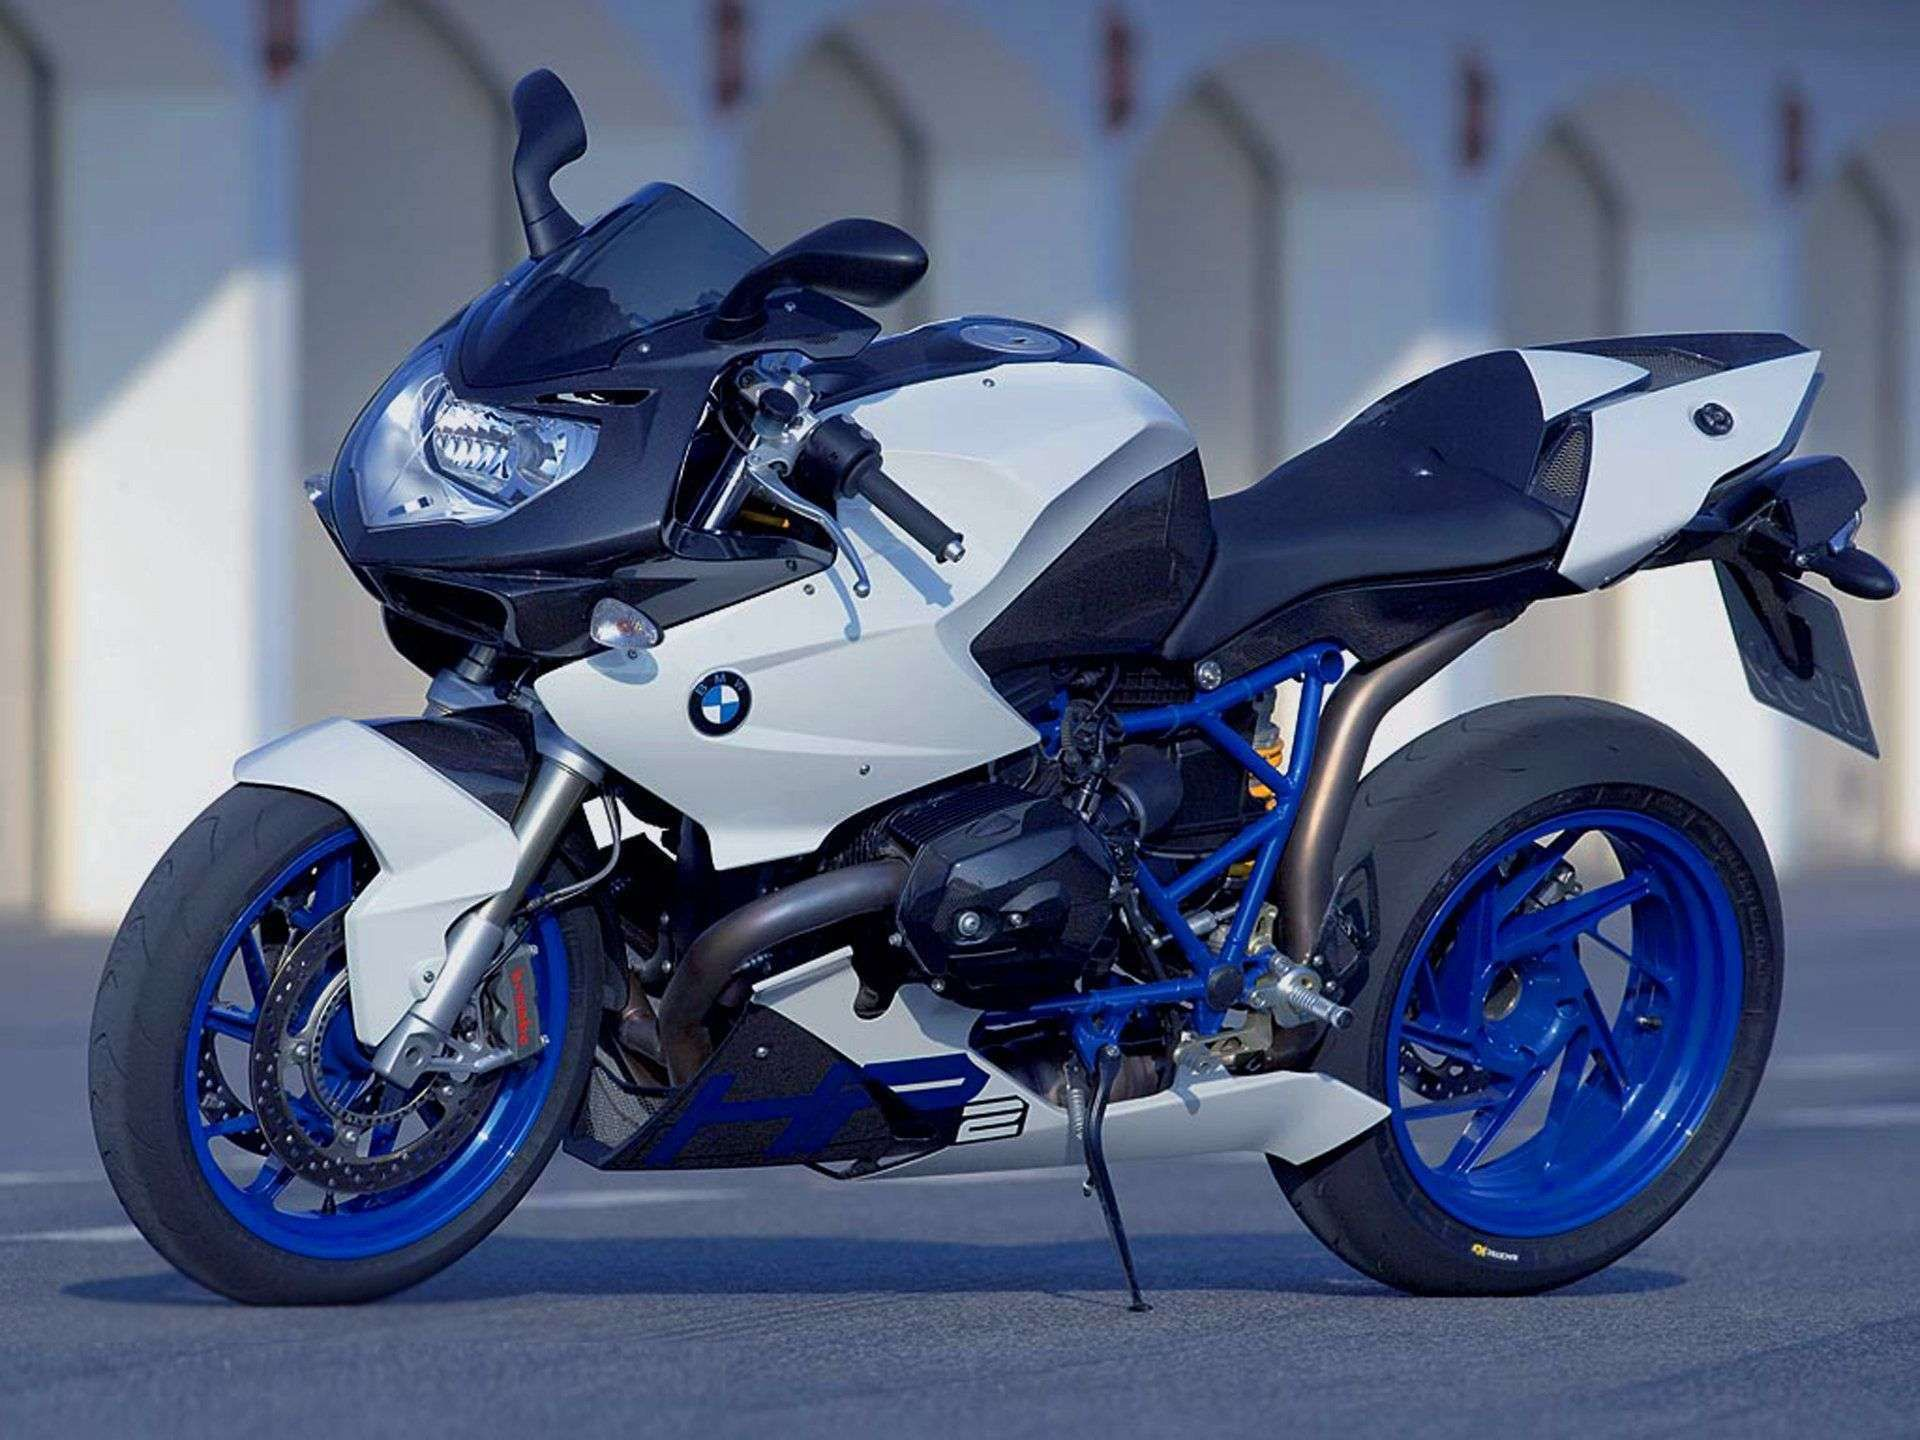 Click here to download in hd format bmw motorcycle sport wallpapers https